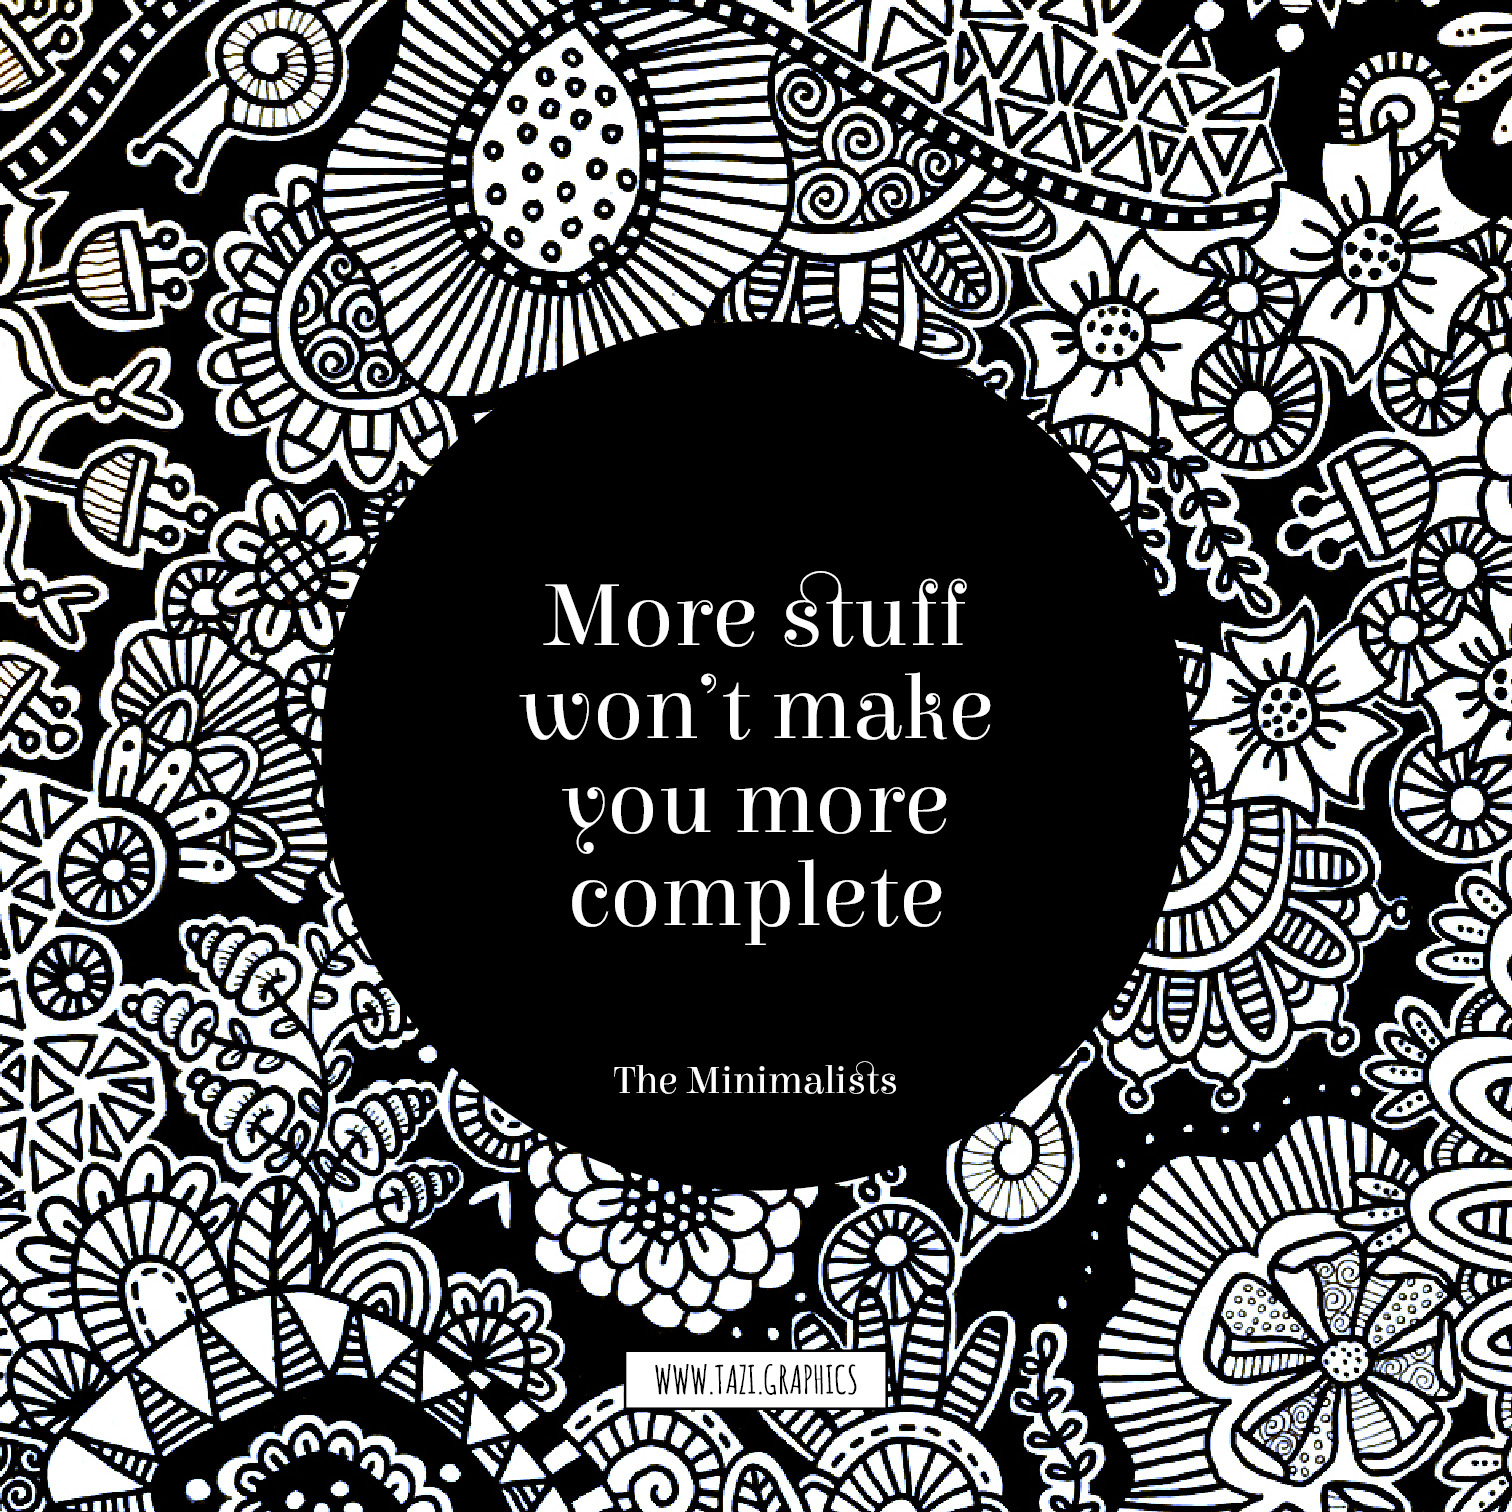 More stuff won't make you more complete